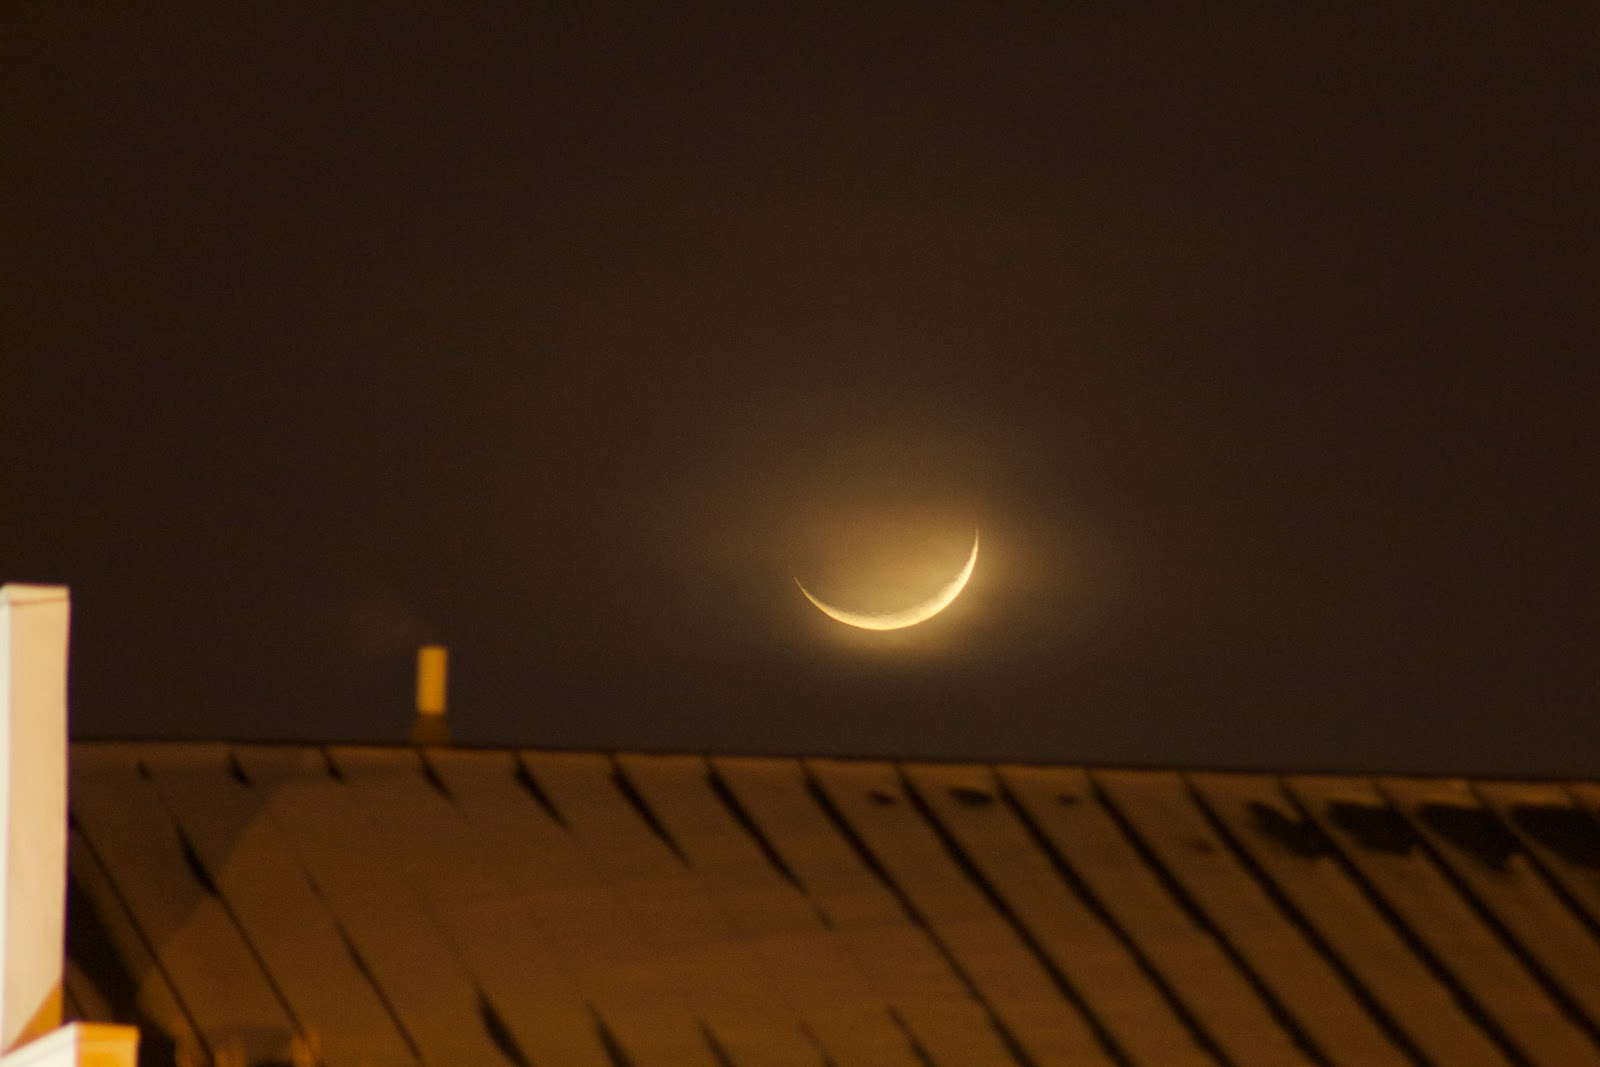 crescent moon over building roof